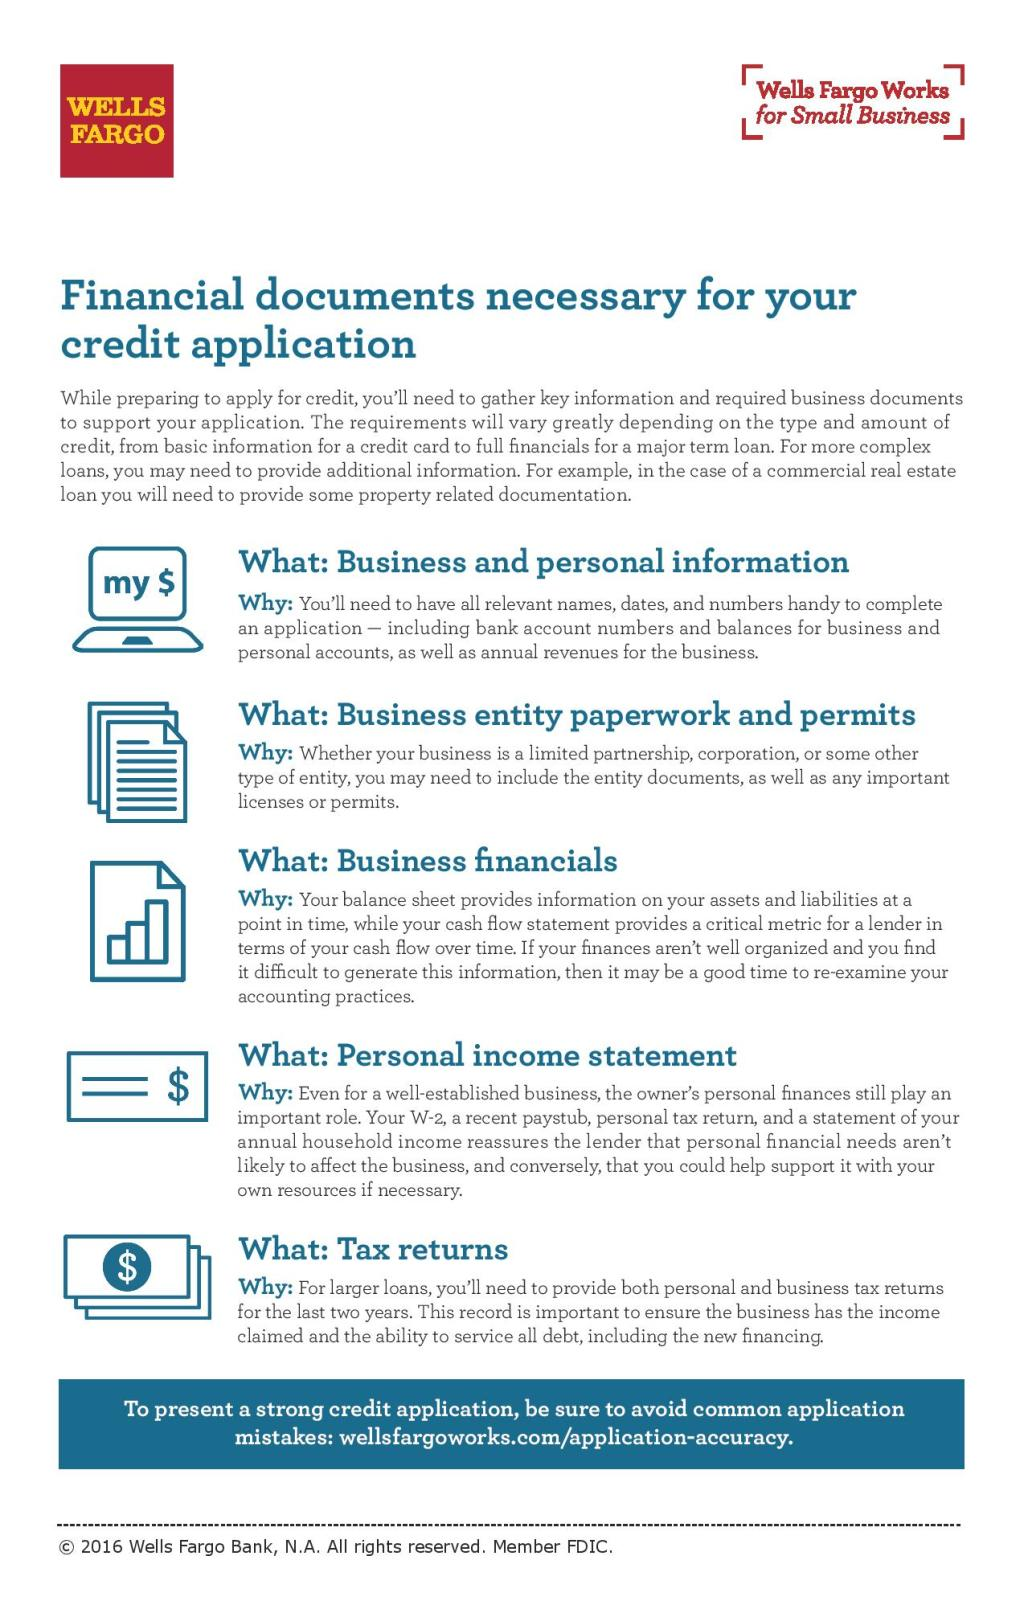 Business financial documents for the credit application process when youre getting ready to apply understand what business documents youll need and why reheart Images